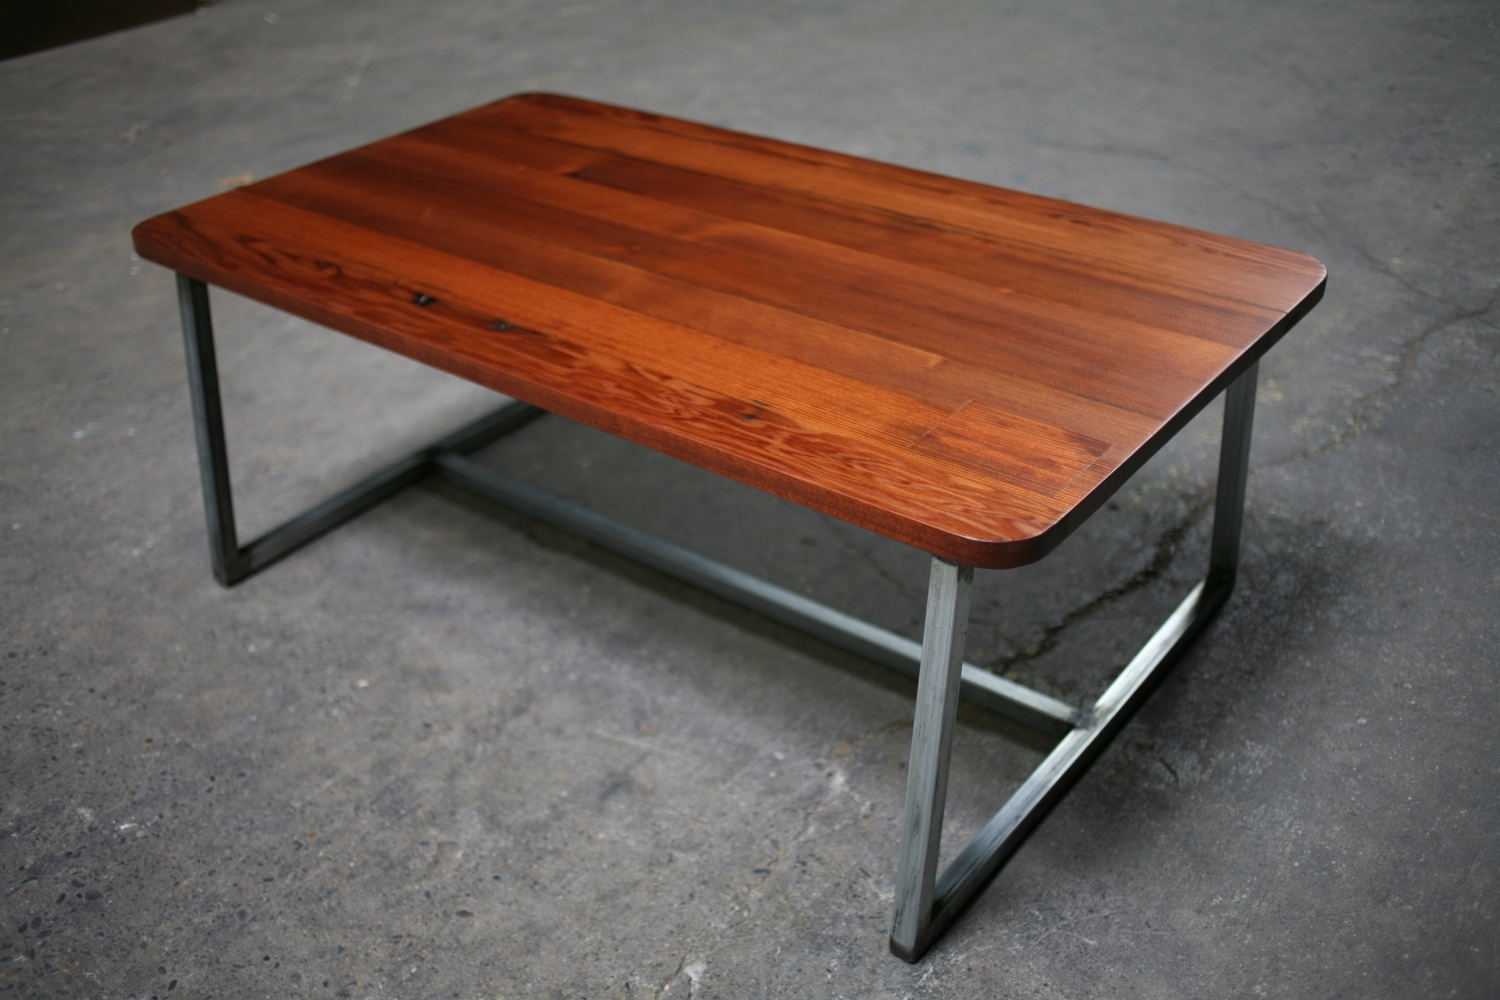 Redwood coffee table with recycled steel base.